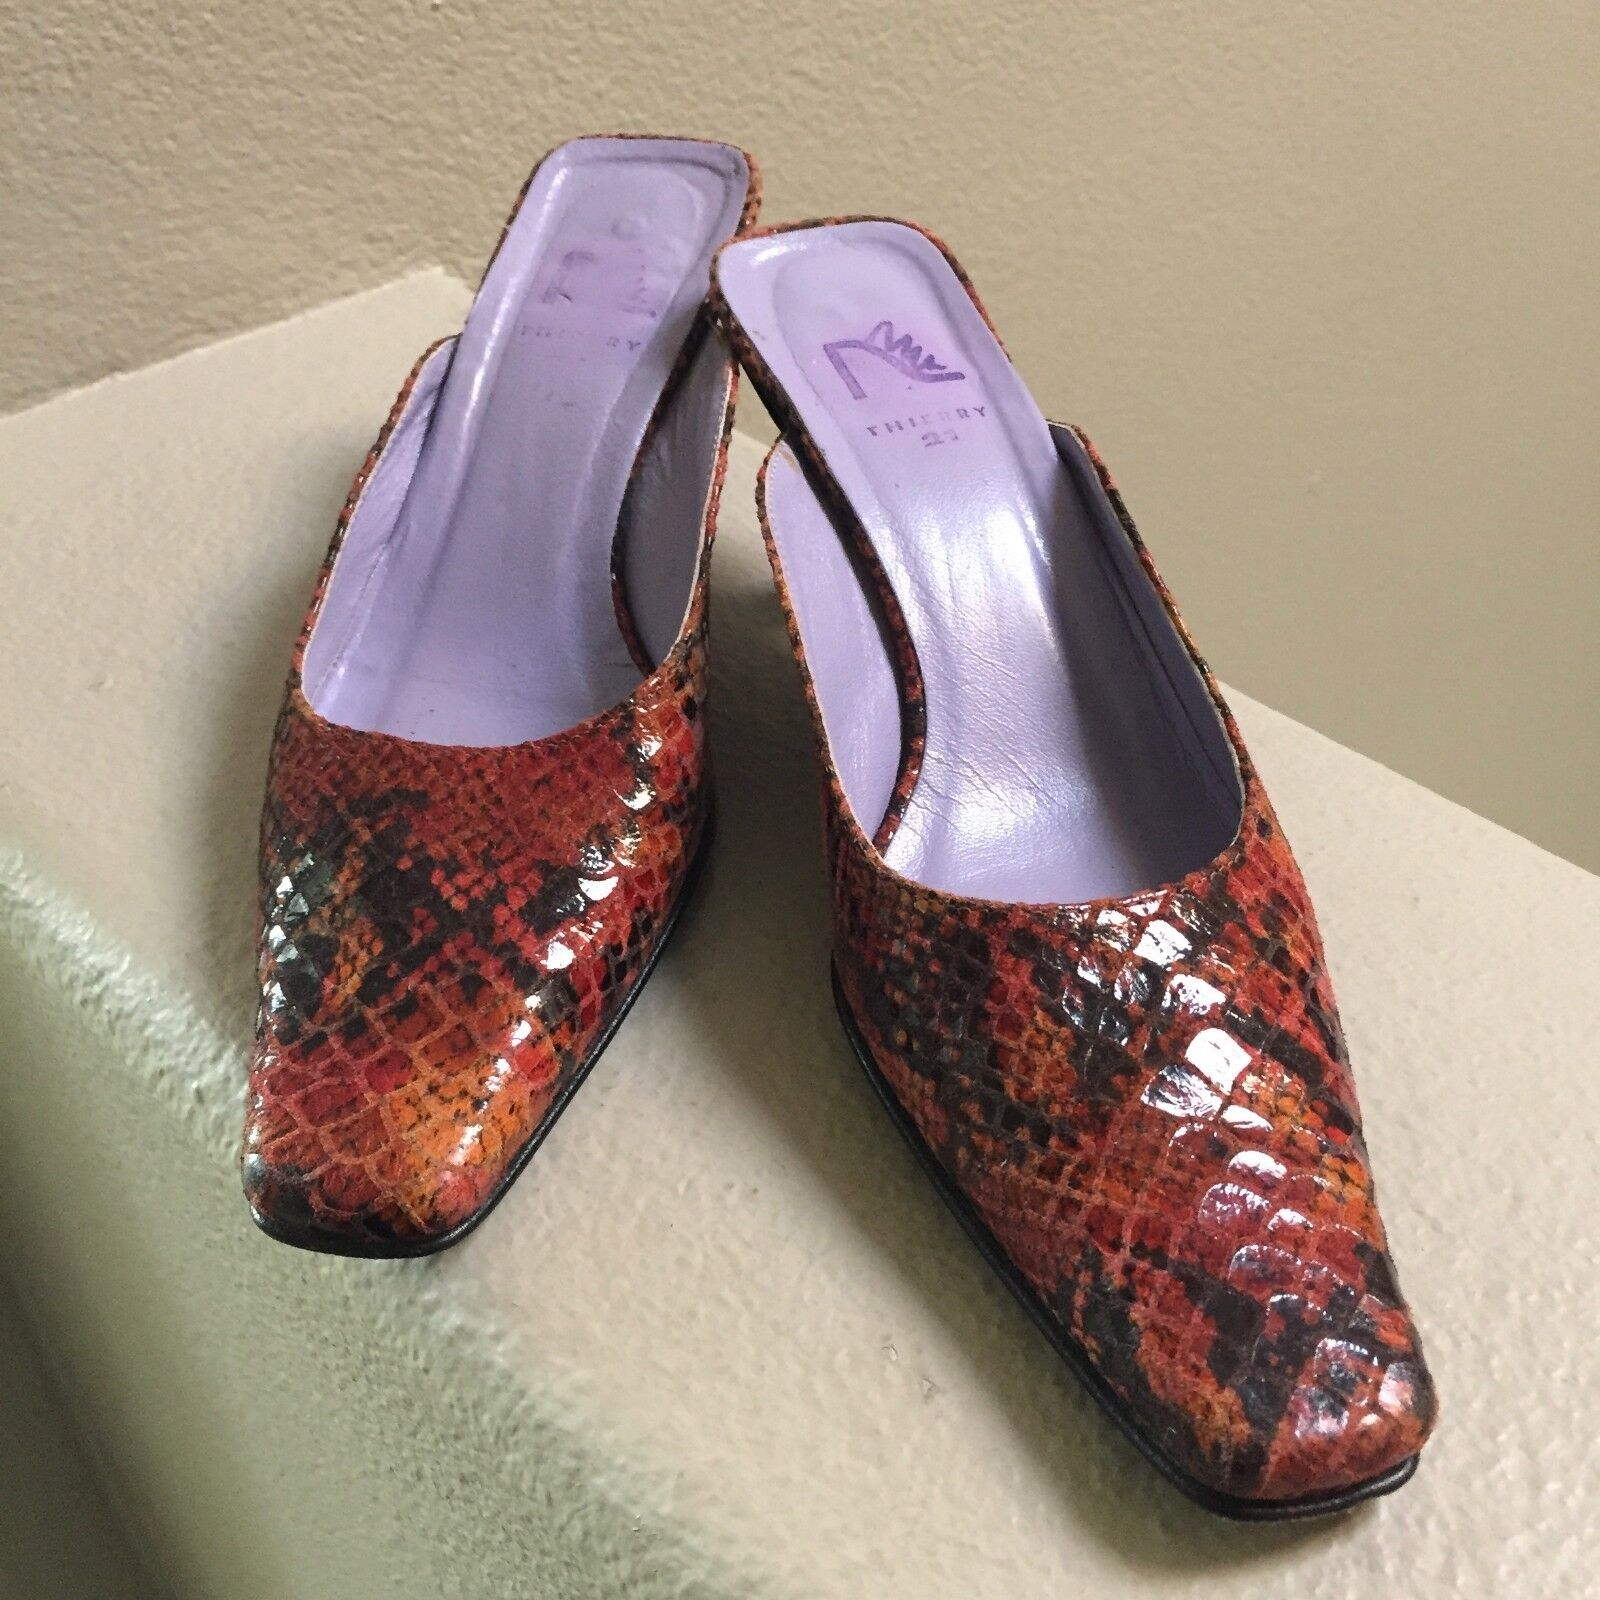 Thierry 21 Womens Mules Pumps Size 37 1 2 Snake Skin Lined Leather.